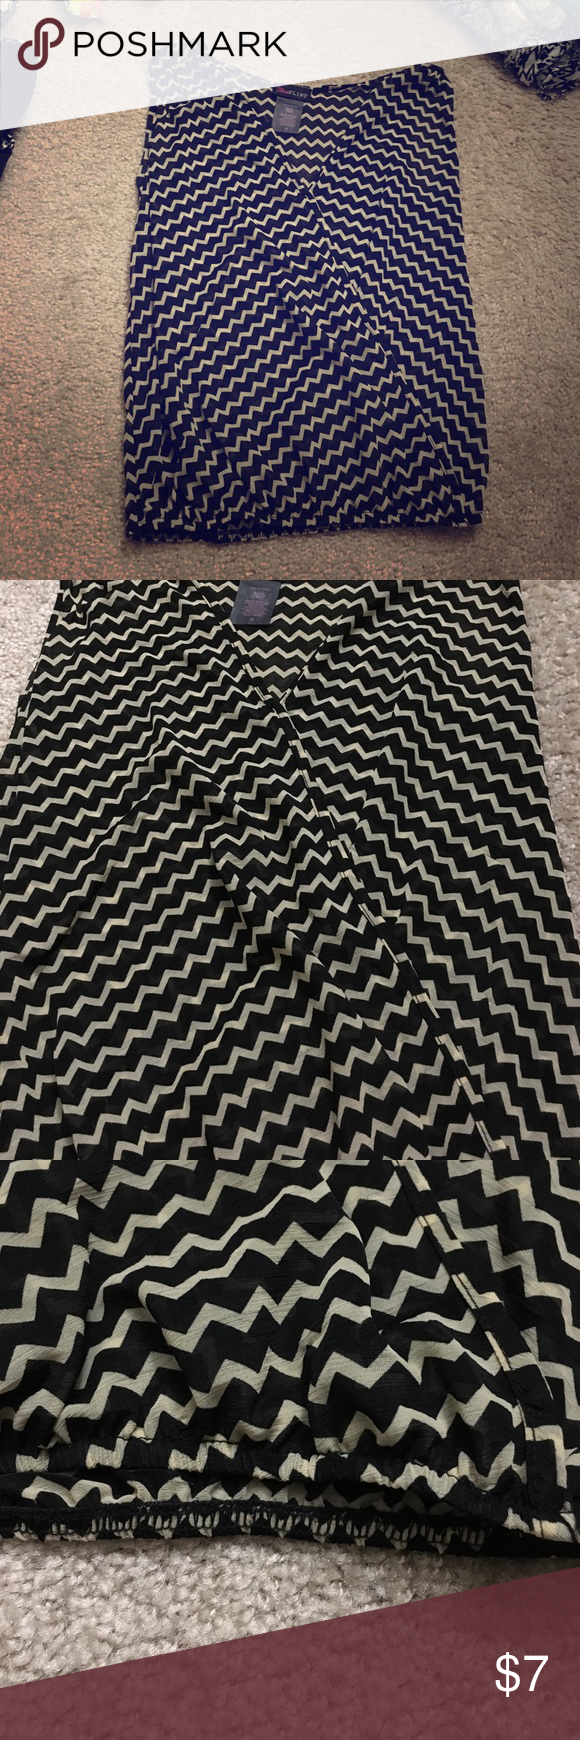 FLOWY TANK TOP Black and Tan flowy tank top with a stretchy bottom. Says size XS but I'm a 34D and have no problem wearing it- fits comfortable Ultra Flirt Tops Tank Tops